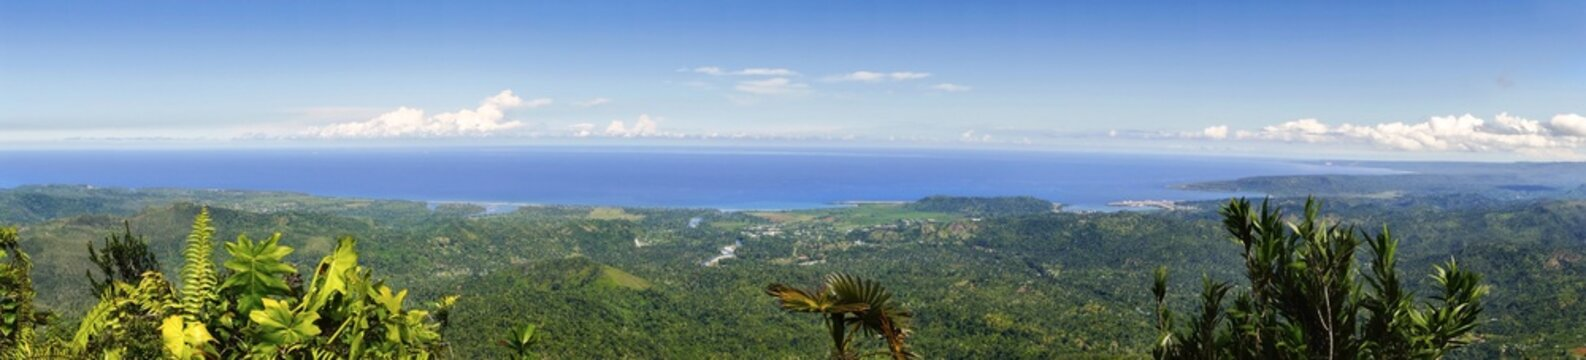 Wide Angle Panoramic Landscape View of Baracoa Bay and Atlantic Ocean Coastline from summit of El Yunque Mountain Cuba